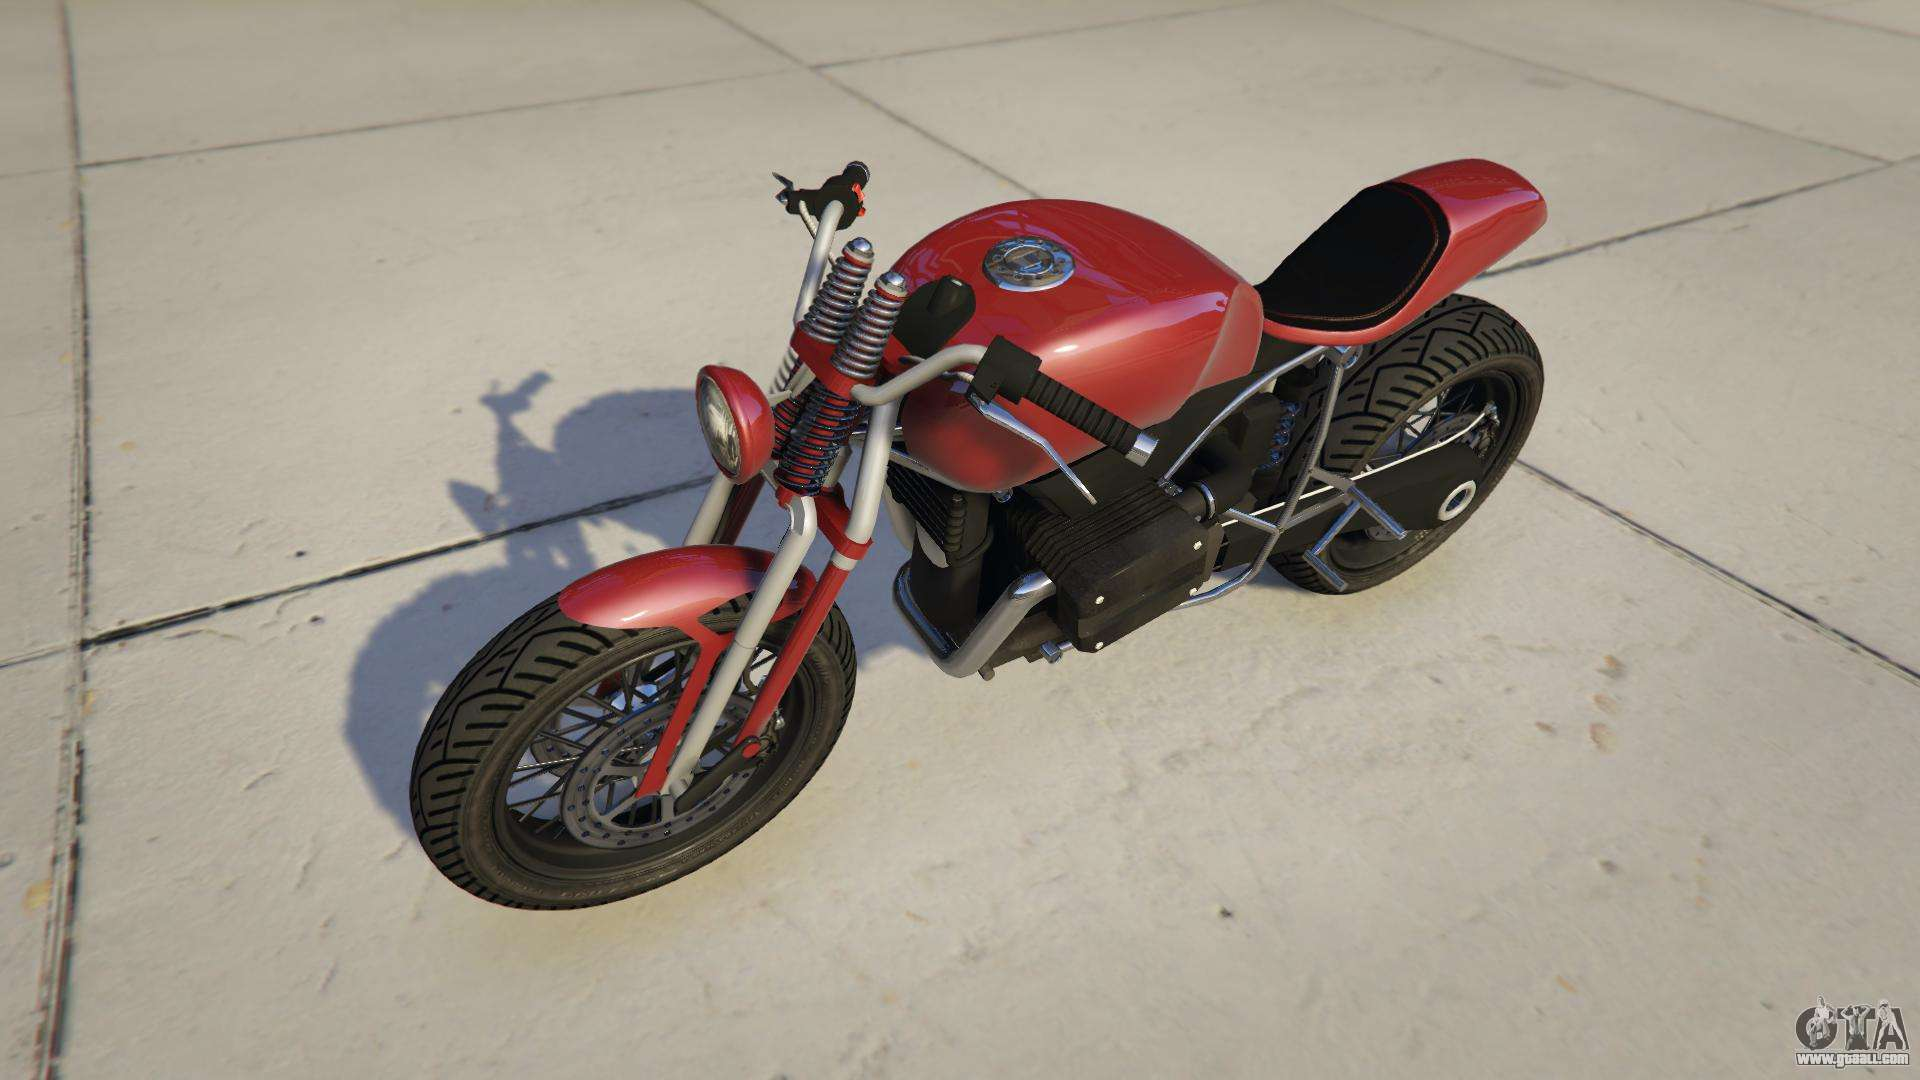 Pegassi FCR 1000 Custom from GTA Online